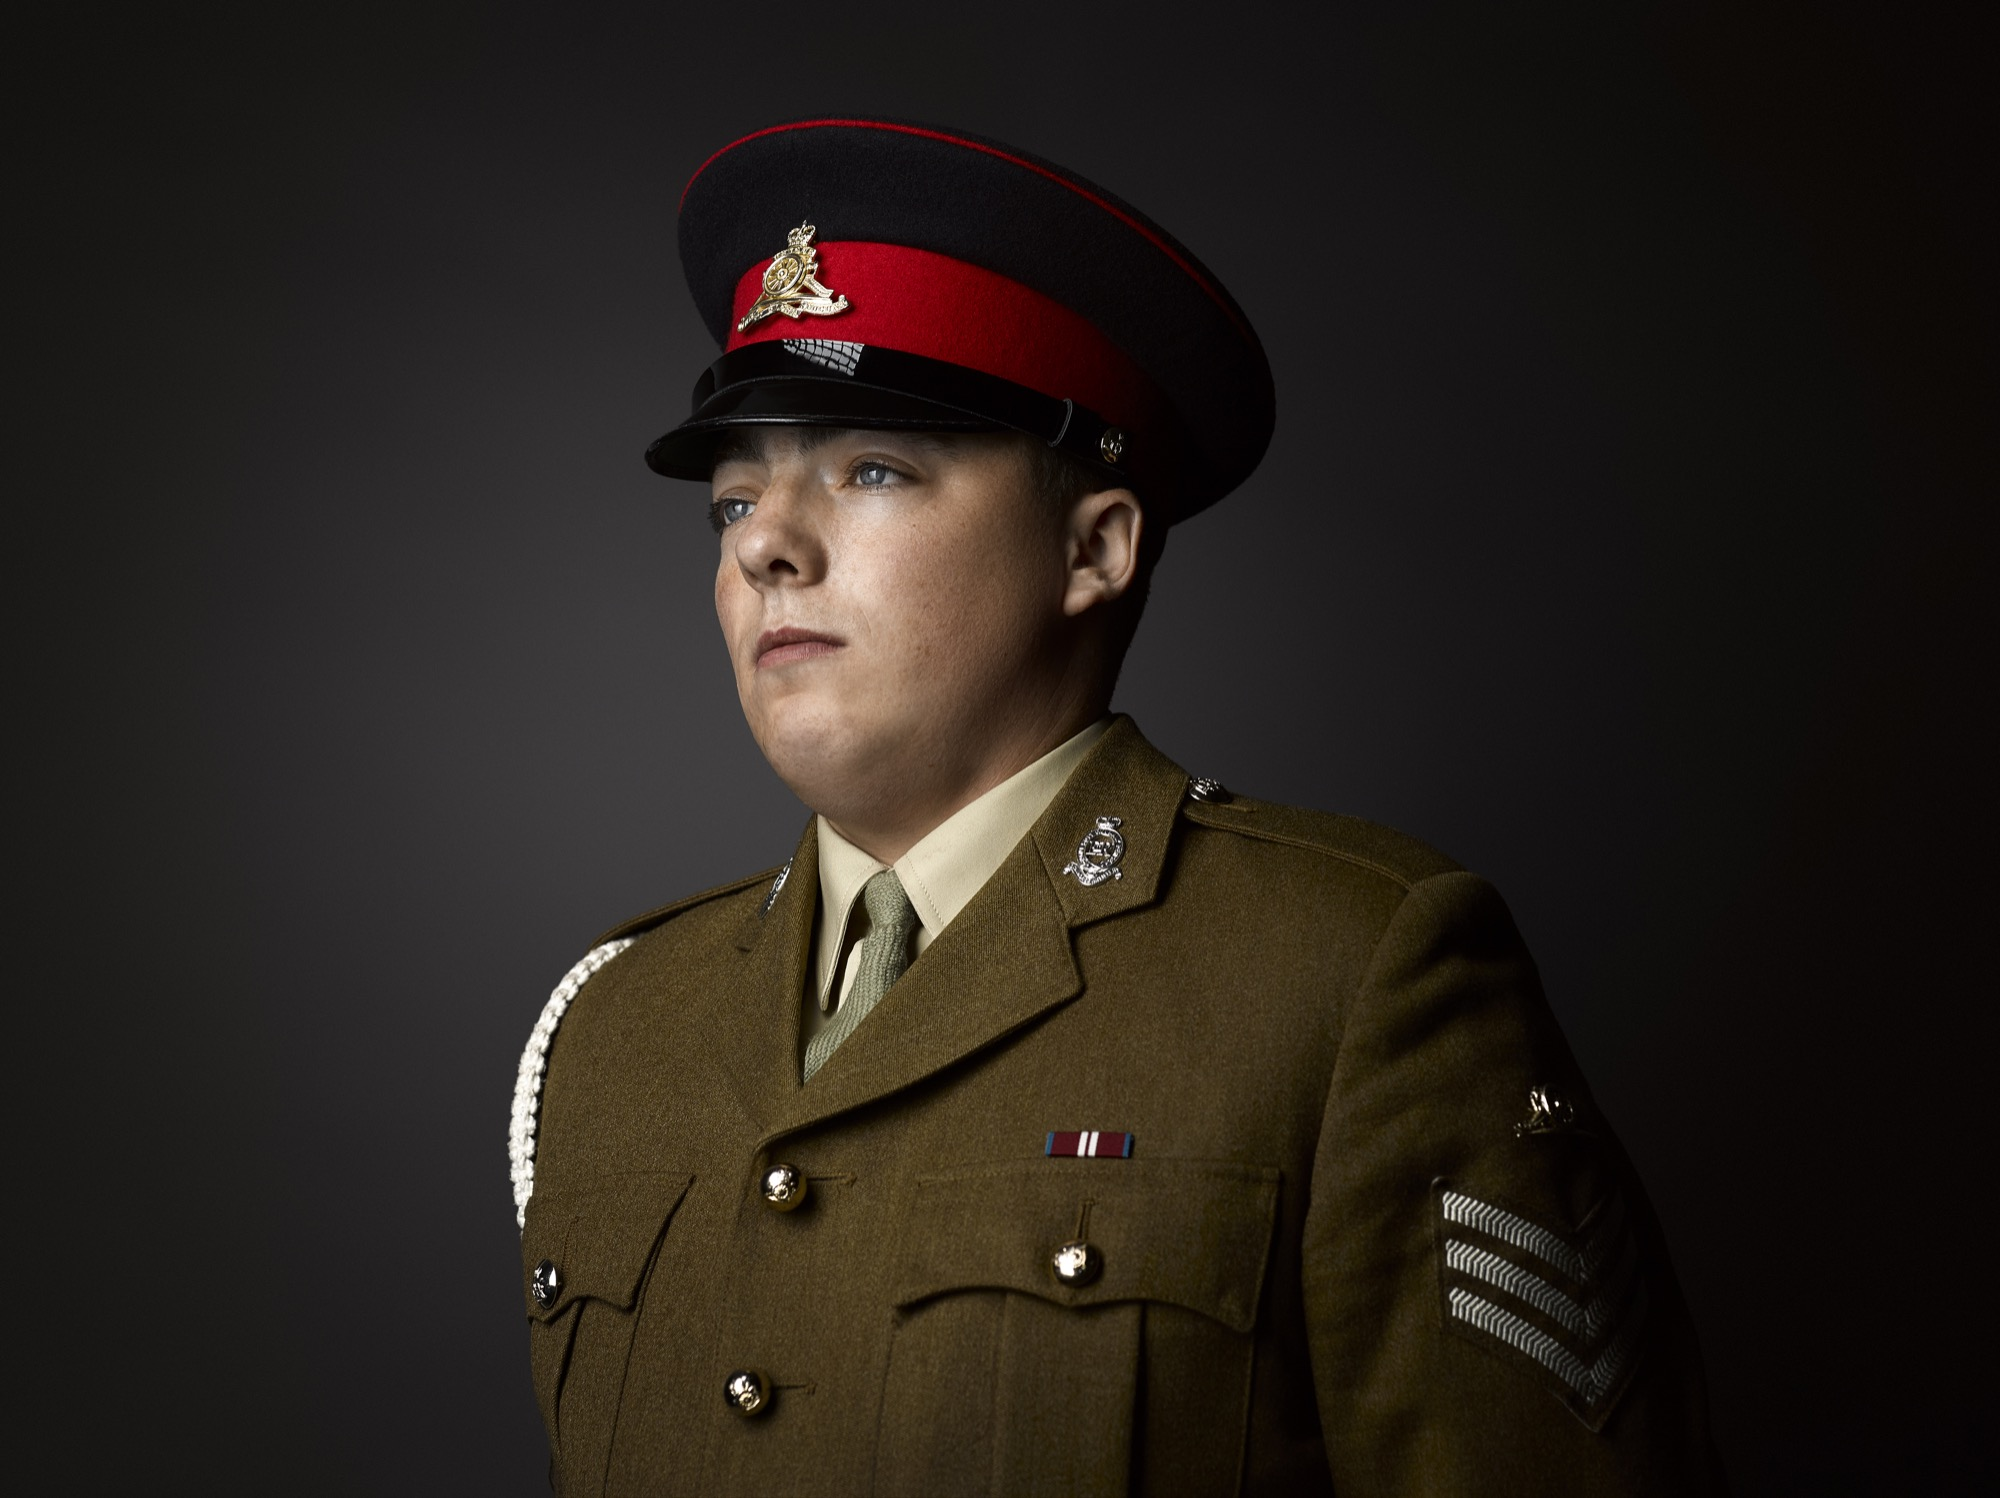 Sgt Davies Kings Troop Royal Horse Artillery.jpg